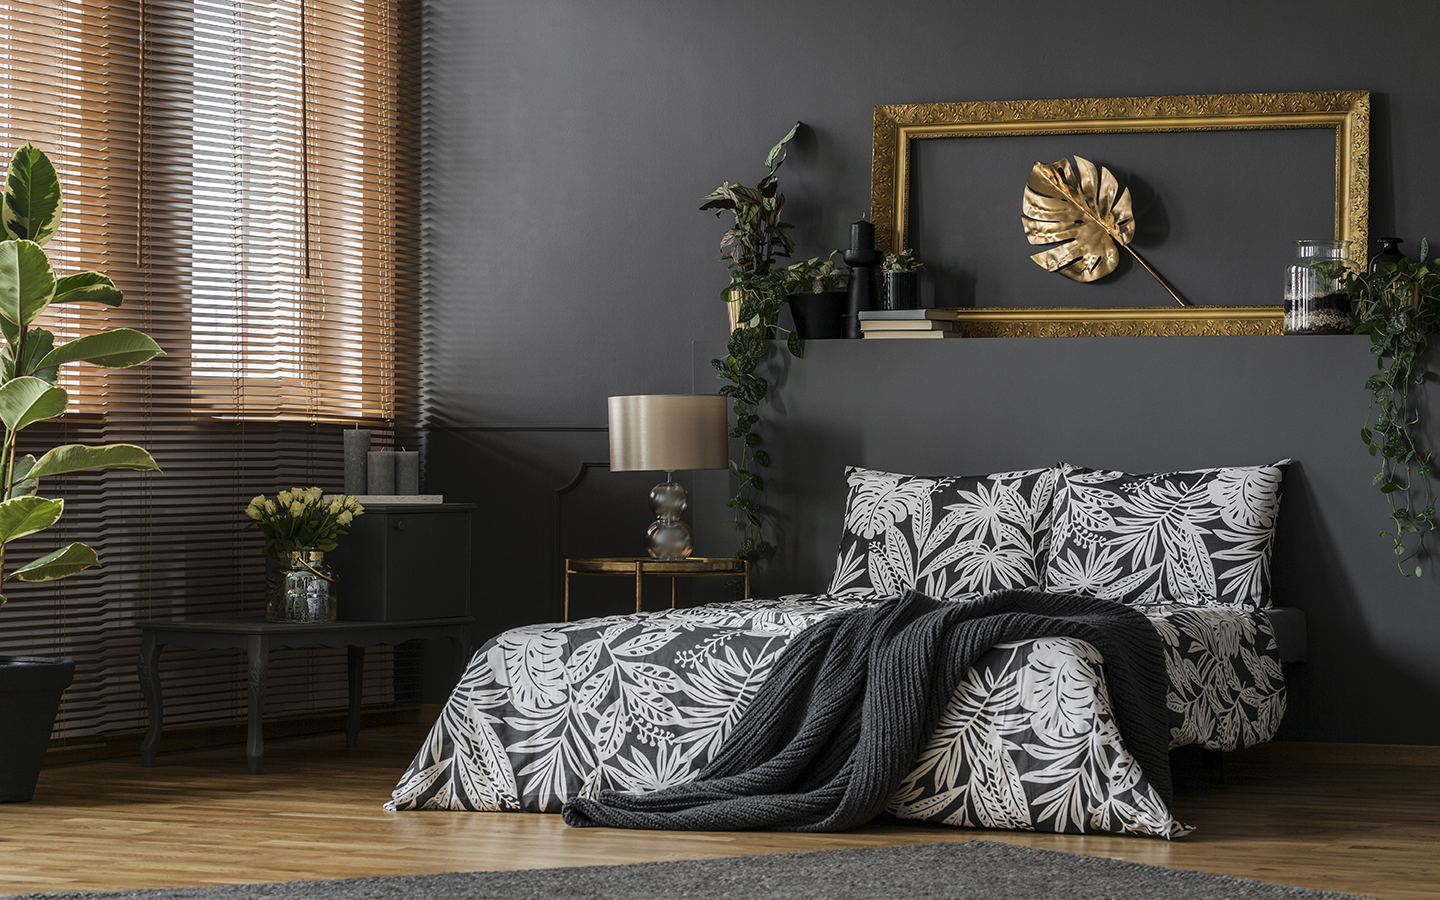 Monochrome bedroom with gold home decor